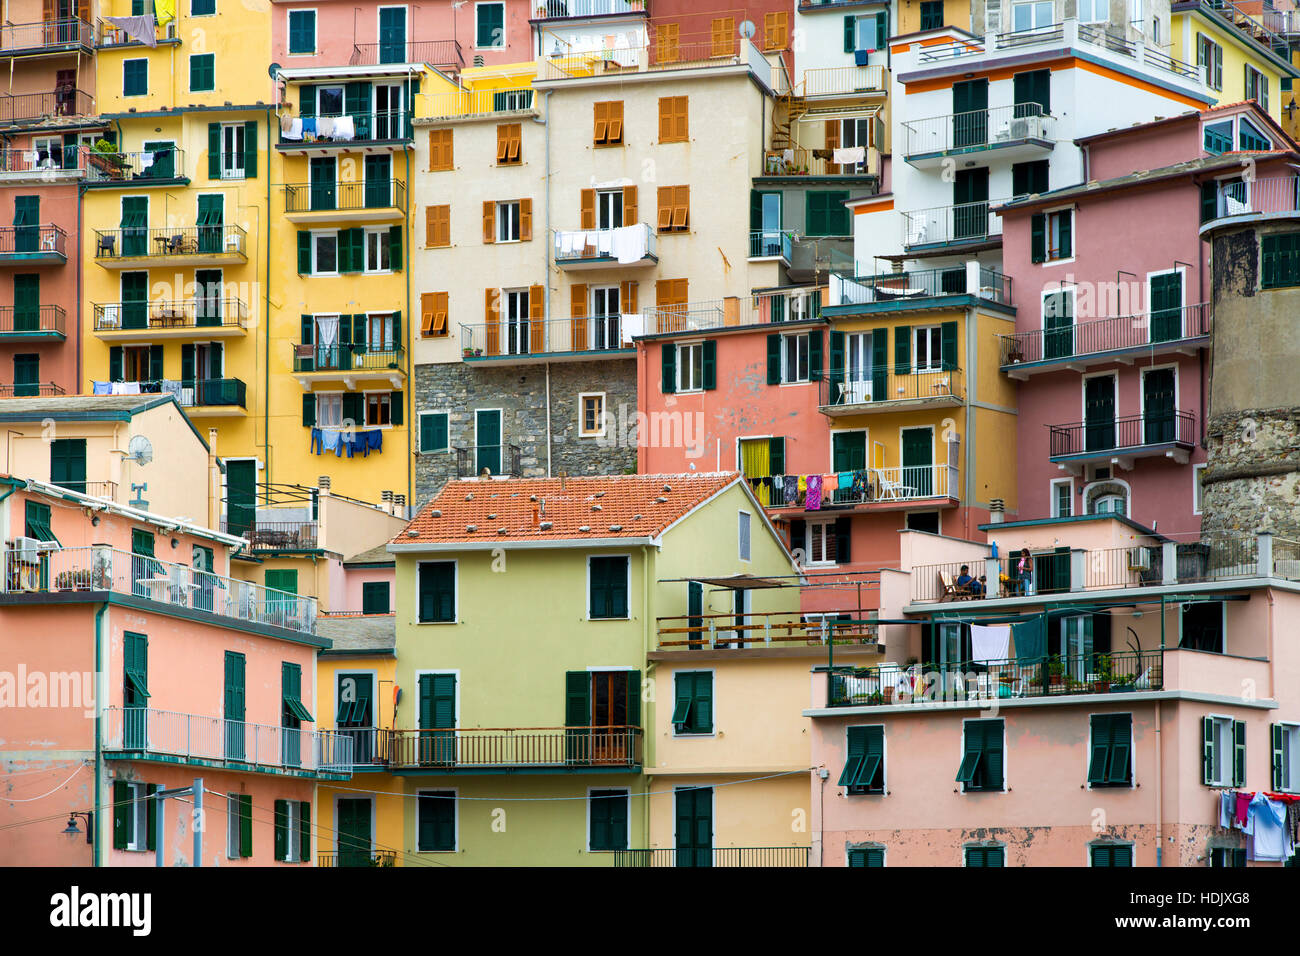 Homes in Vernazza, Cinque Terre, Liguria, Italy - Stock Image